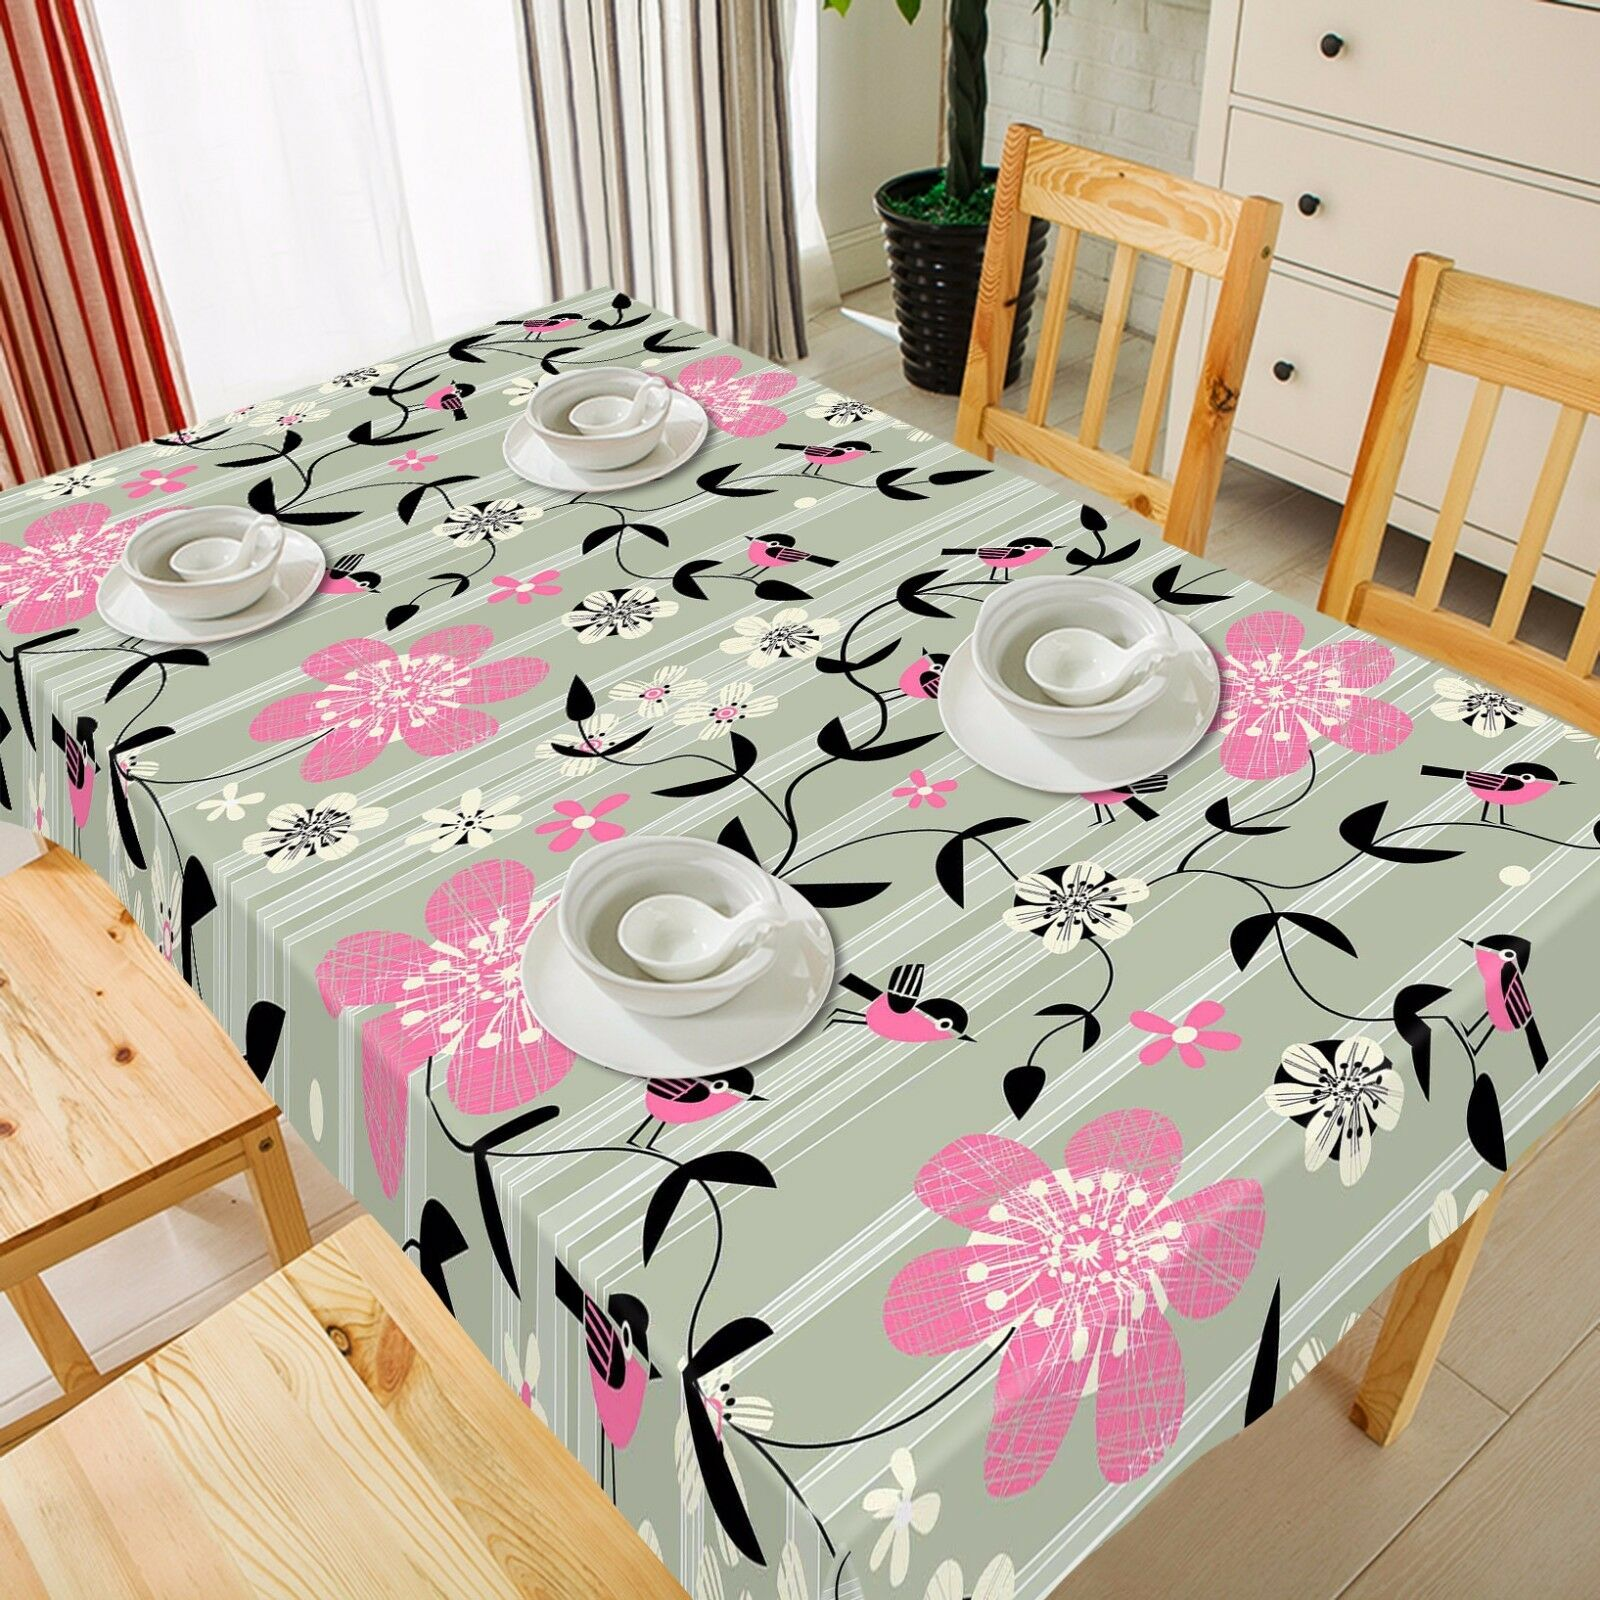 3D Flower 847 Tablecloth Table Cover Cloth Birthday Party Event AJ WALLPAPER UK